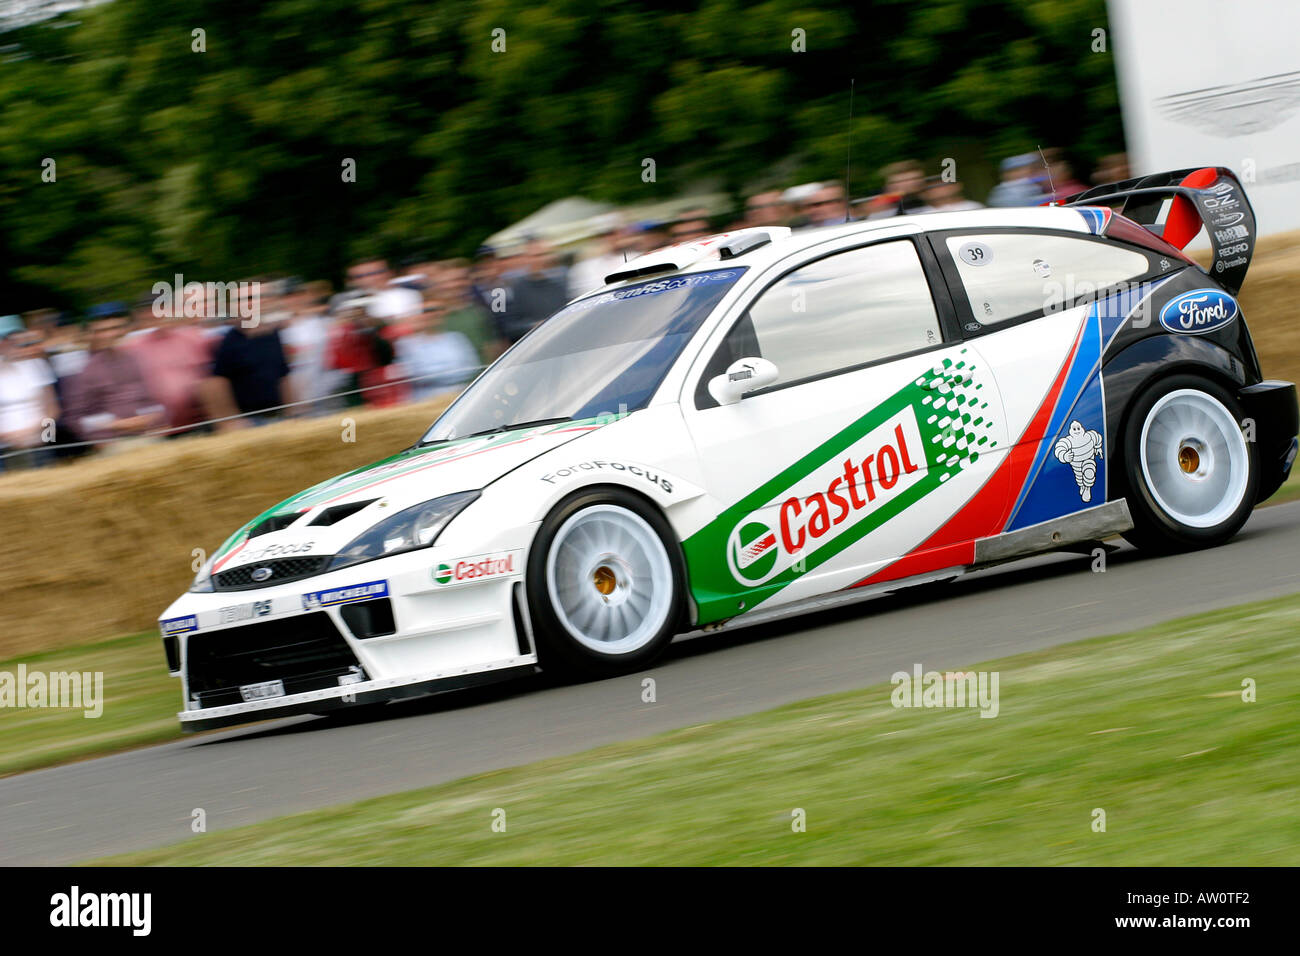 2003 Ford Focus Wrc At Goodwood Festival Of Speed Sussex Uk Stock